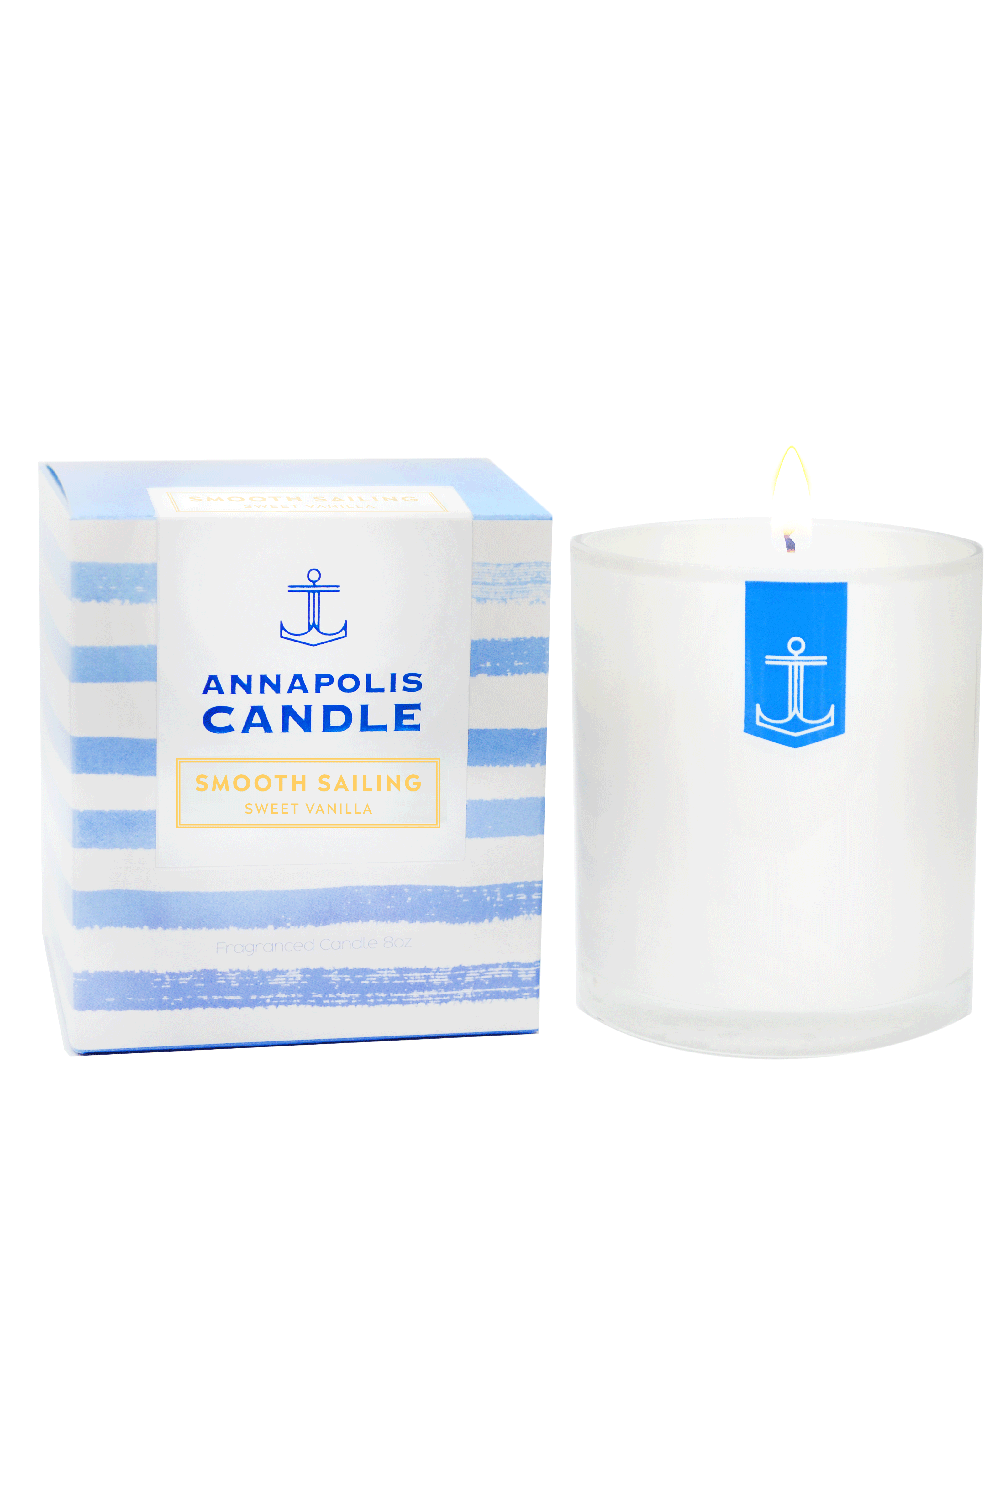 *NEW* Boxed Annapolis Candle - Smooth Sailing